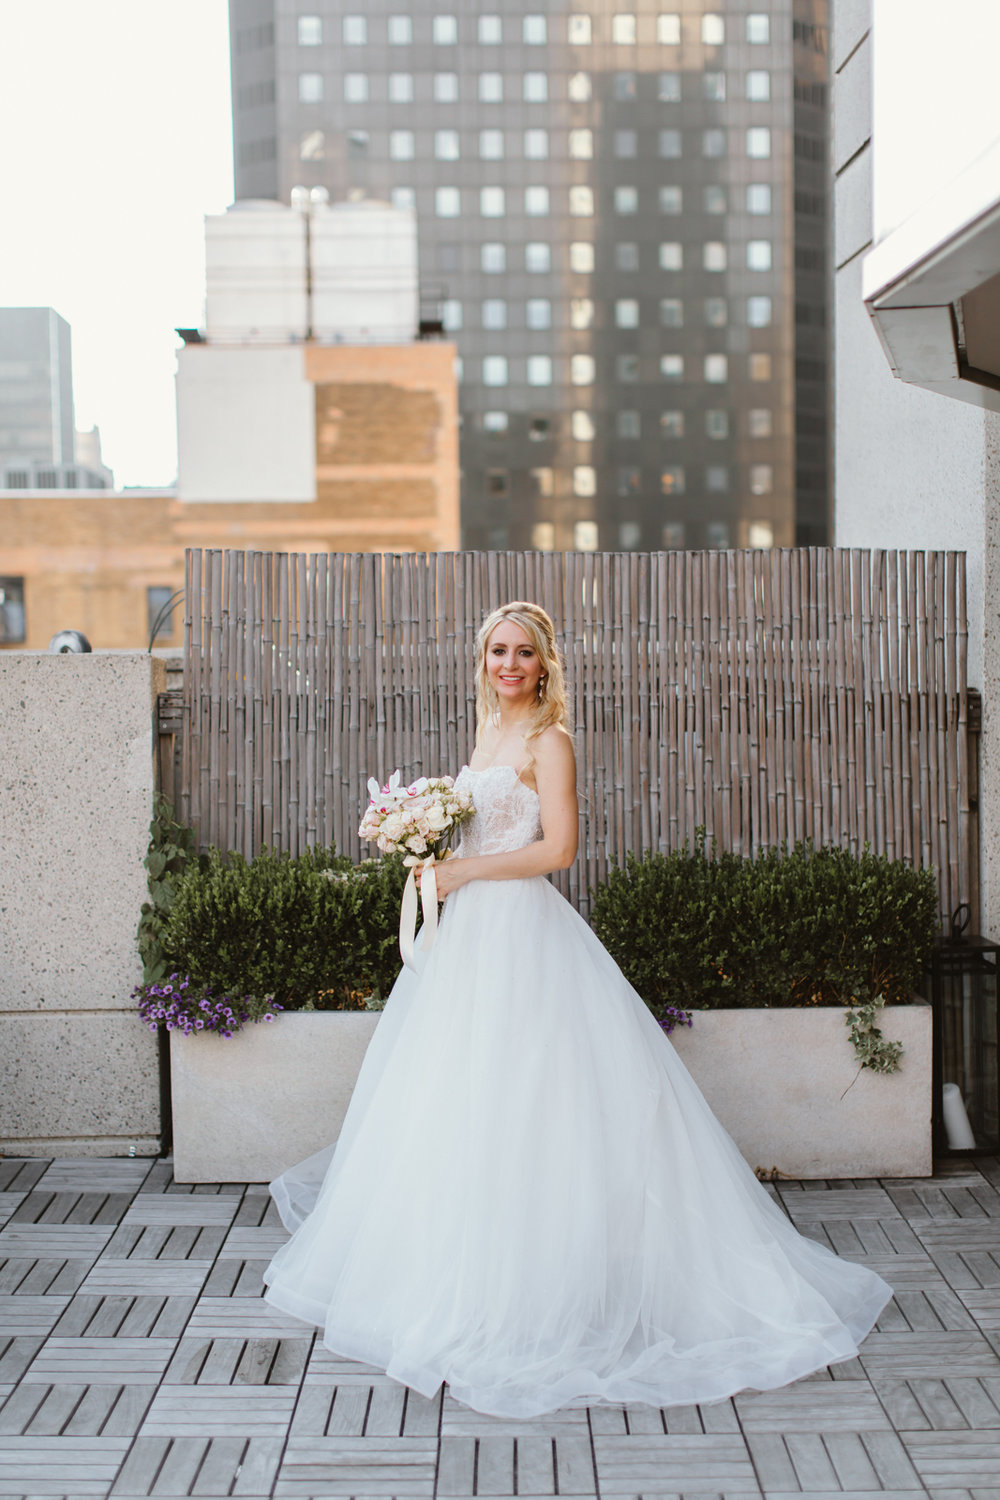 NYC Wedding Photography Sofitel Central Park Brooklyn Photographer Boris Zaretsky _B2C2736.jpg